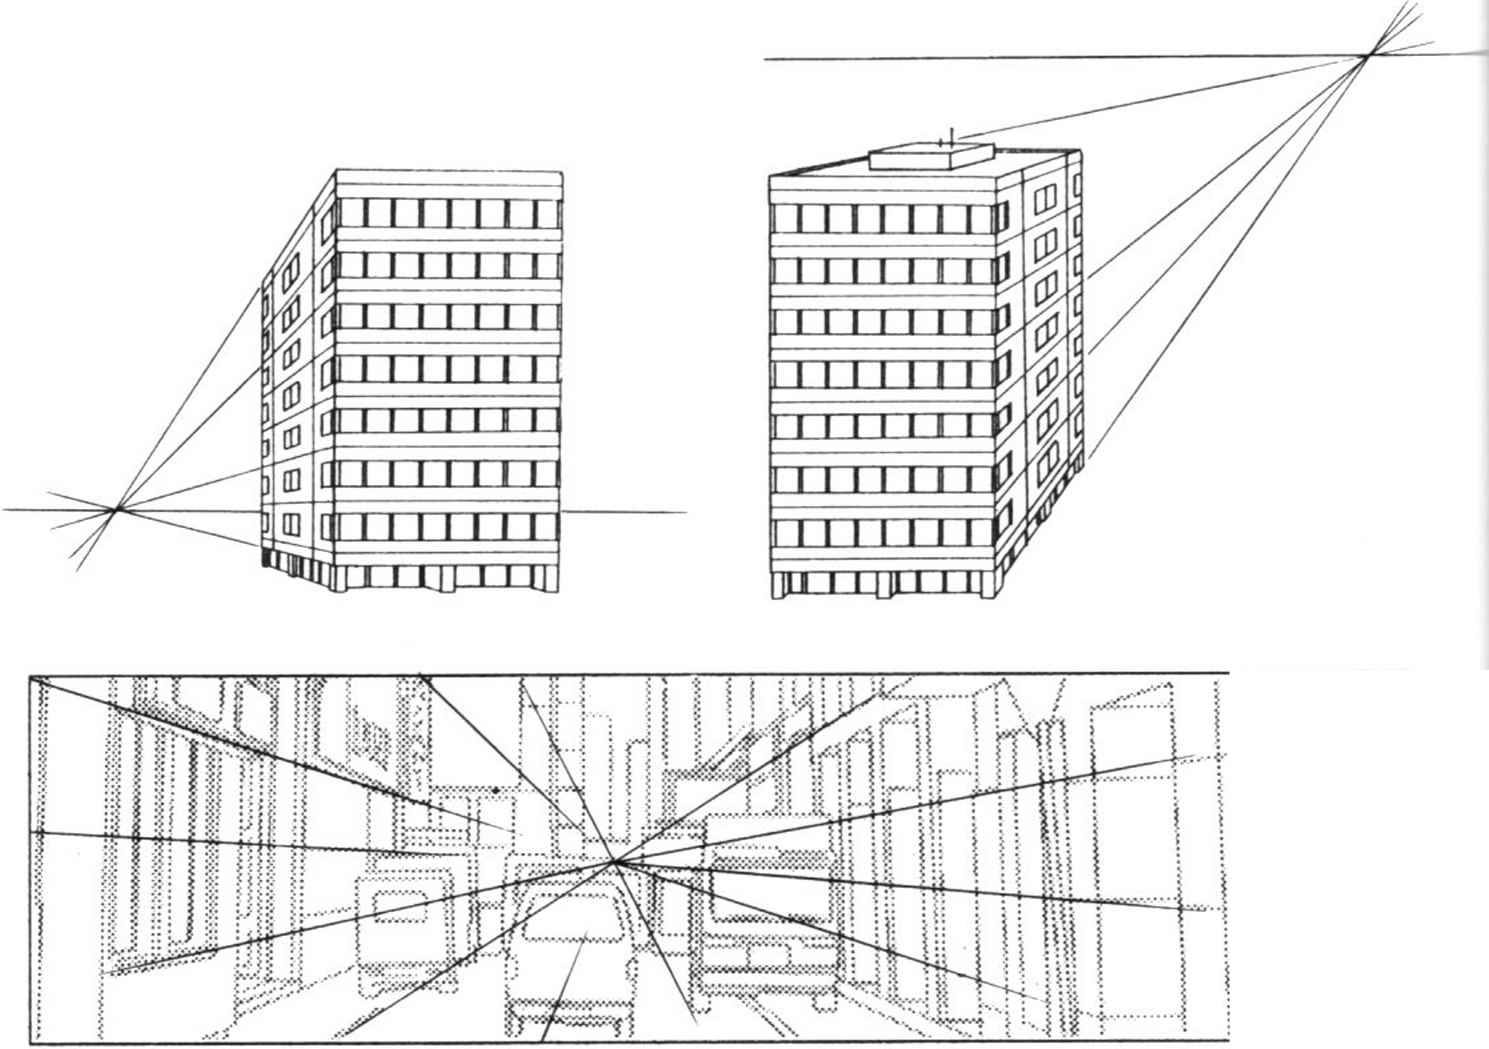 perspective drawing essay